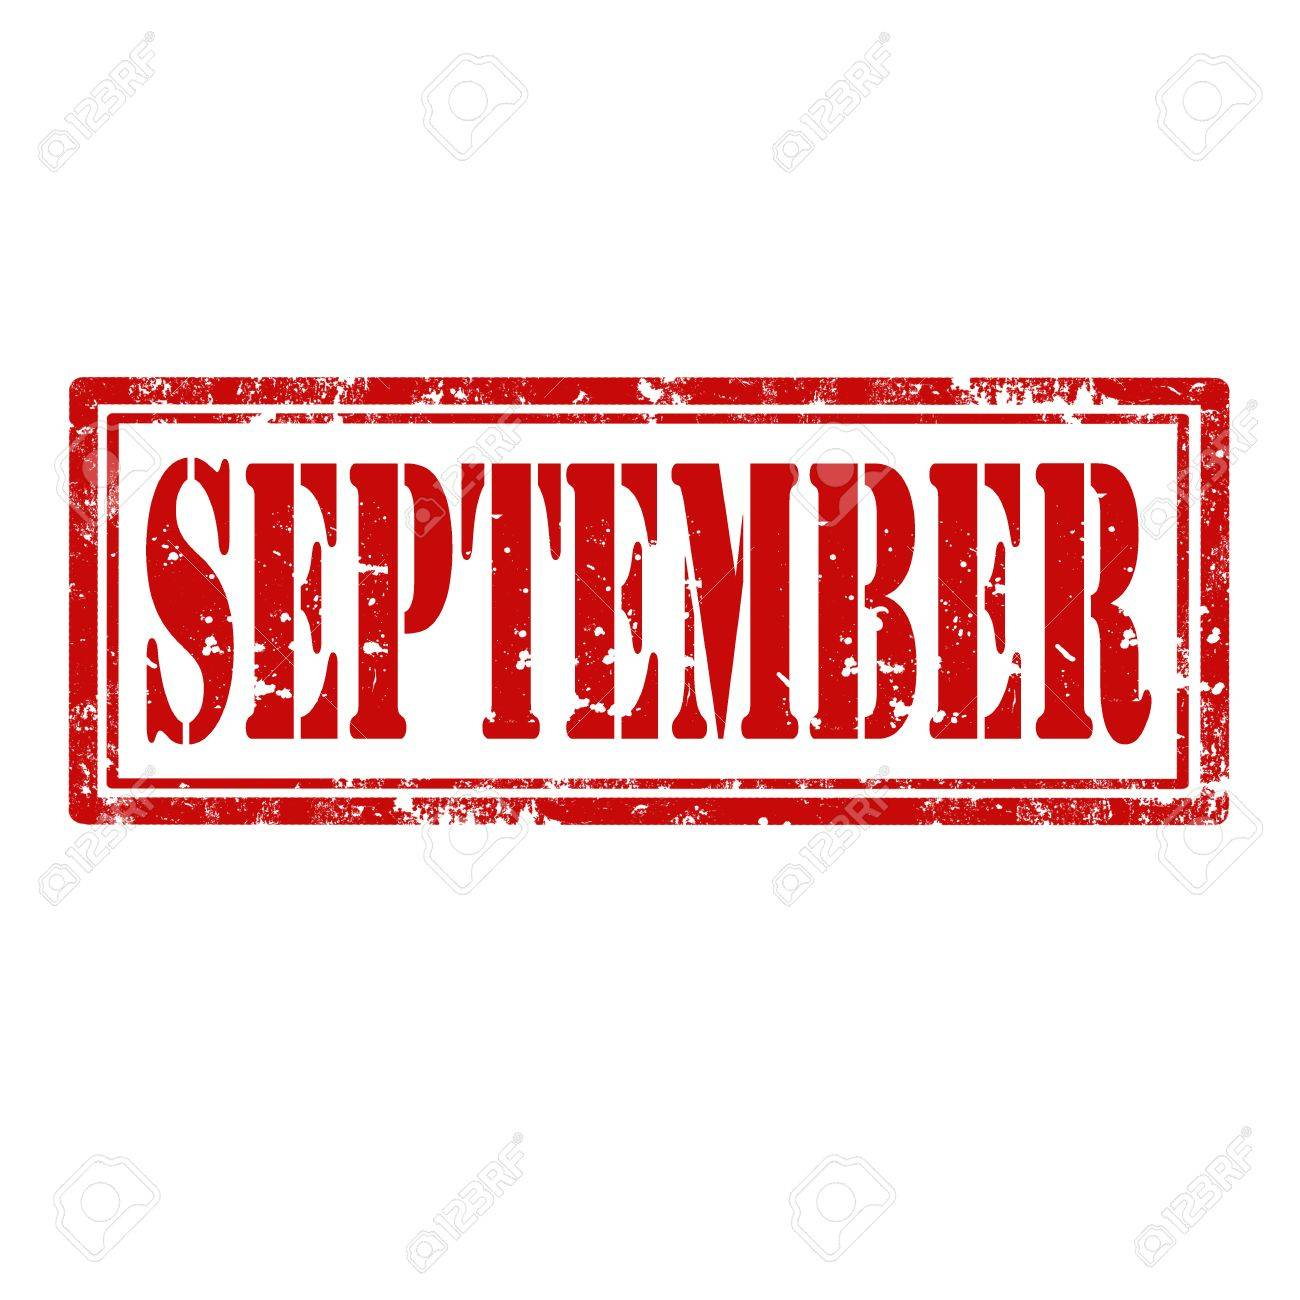 September Word Cliparts Free Download Clip Art.